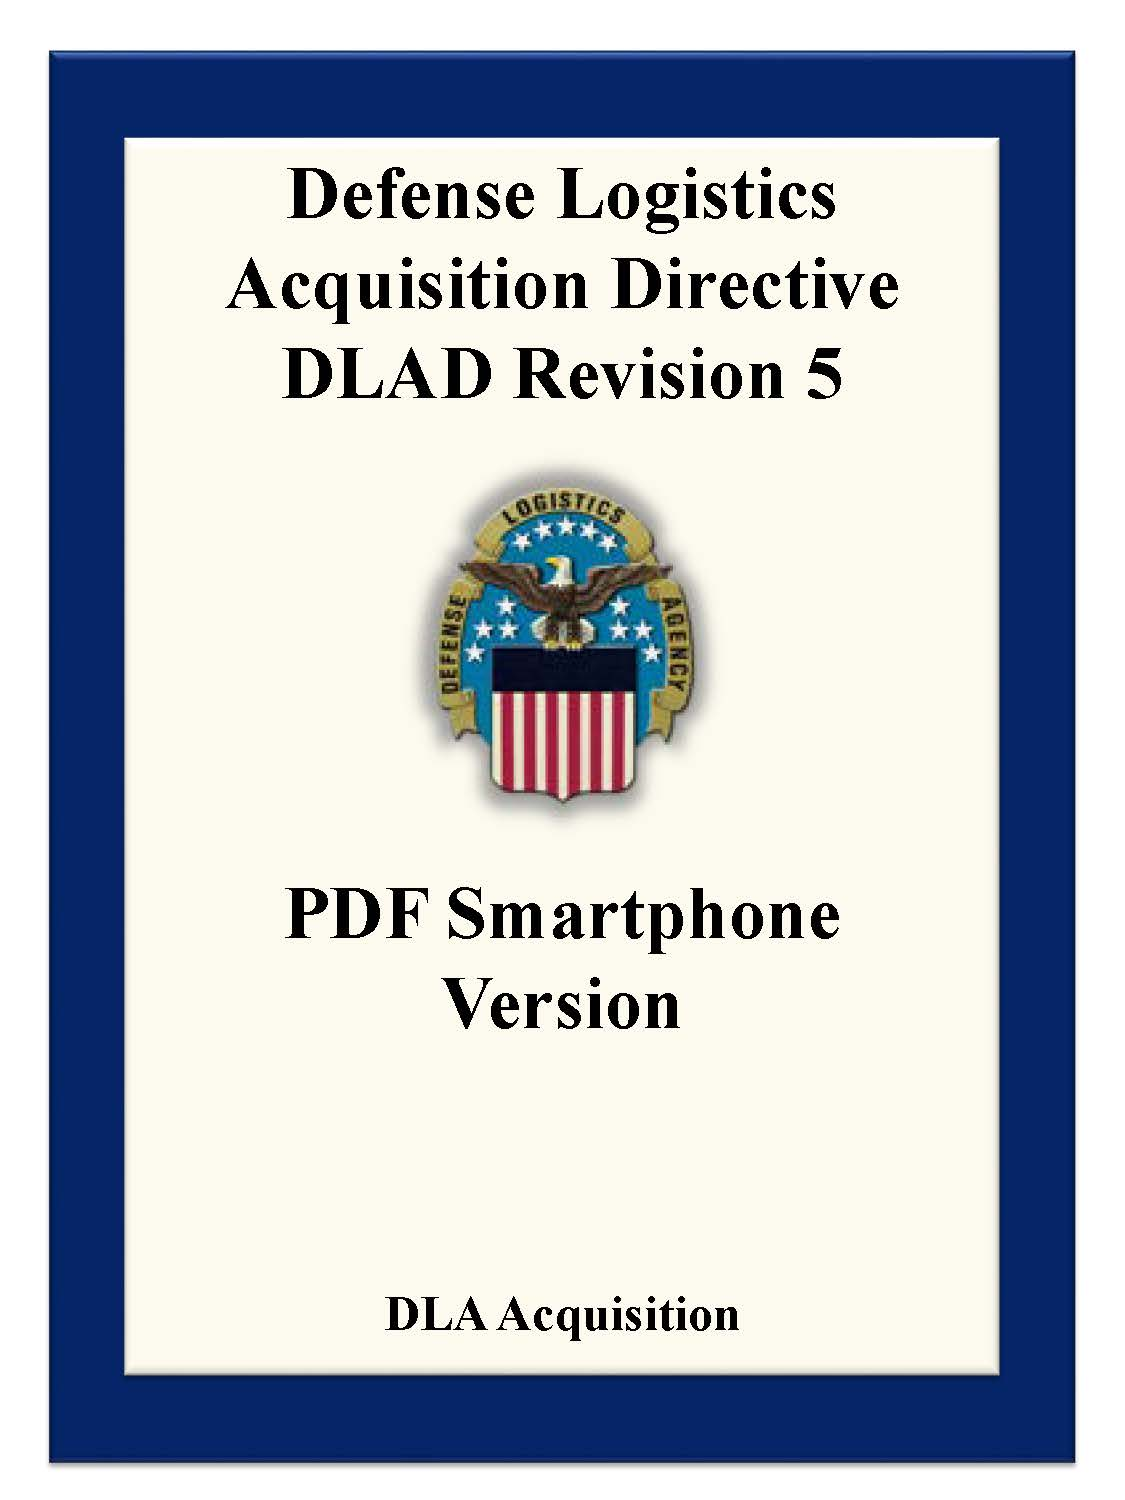 DLAD Revision 5 Smartphone PDF Version